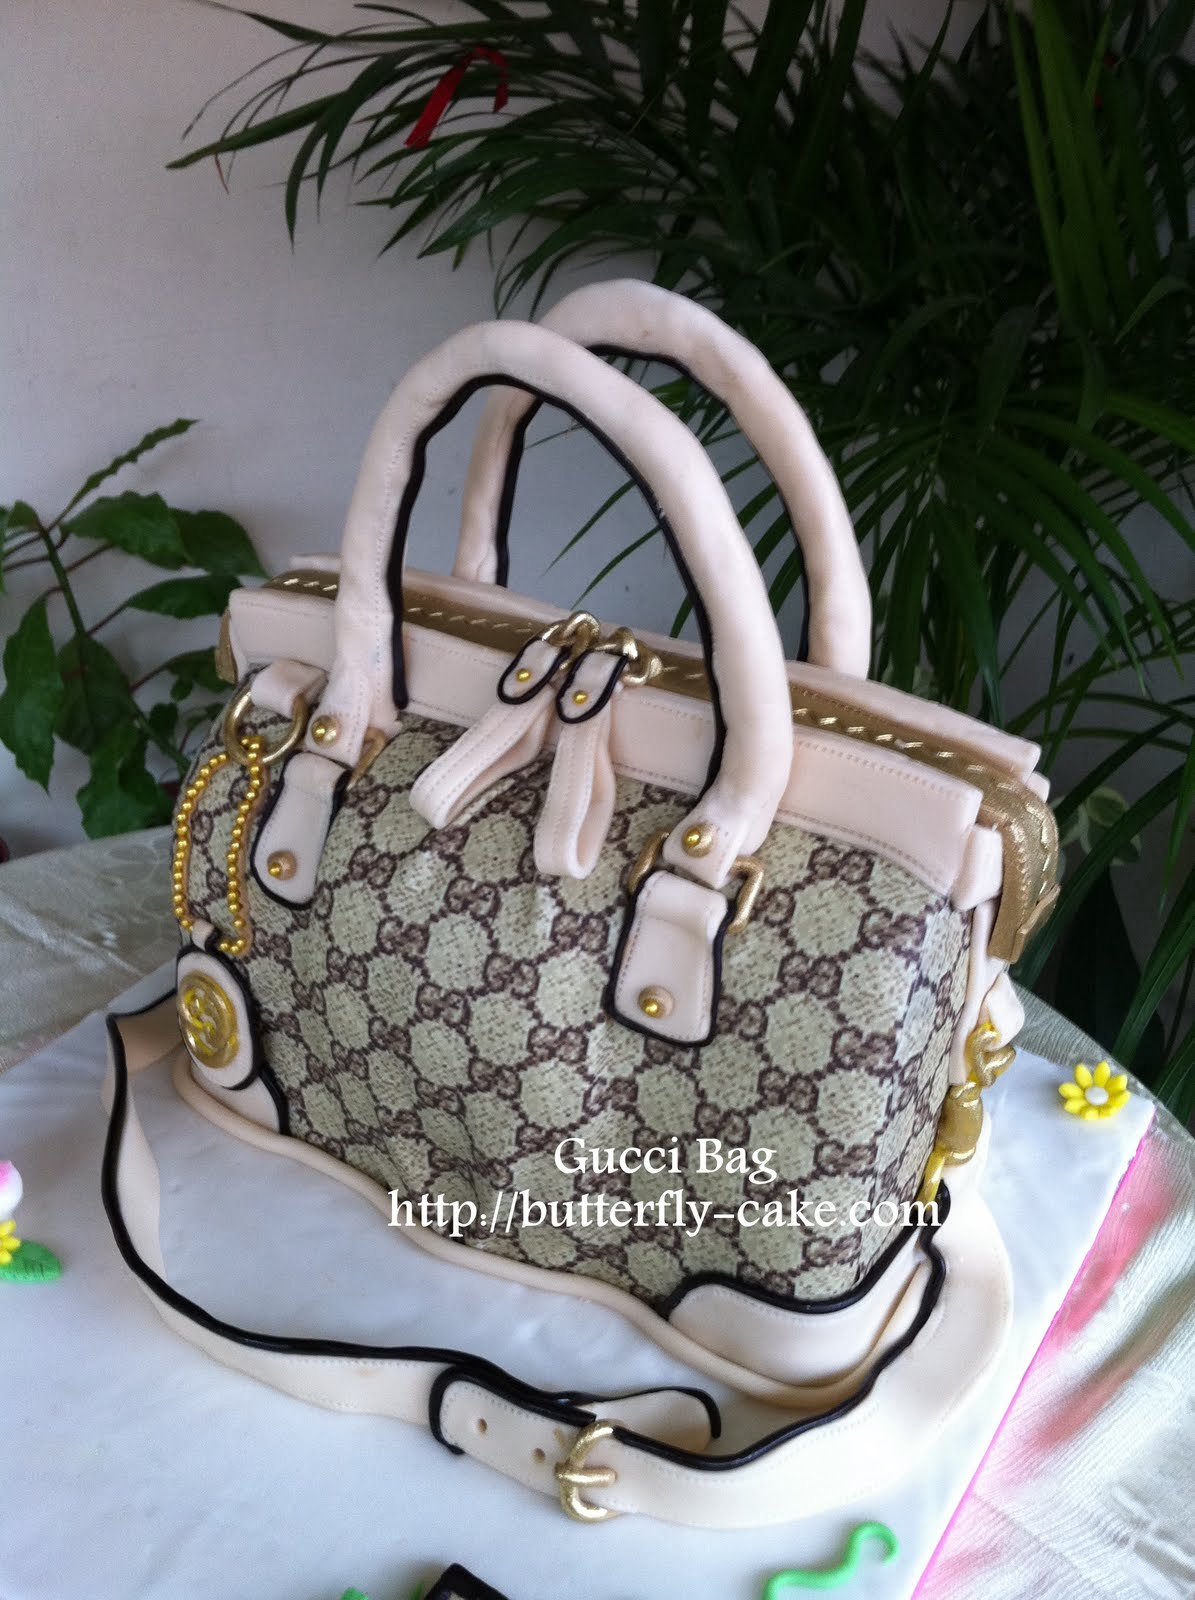 Butterfly Cake: Feedback Gucci Bag